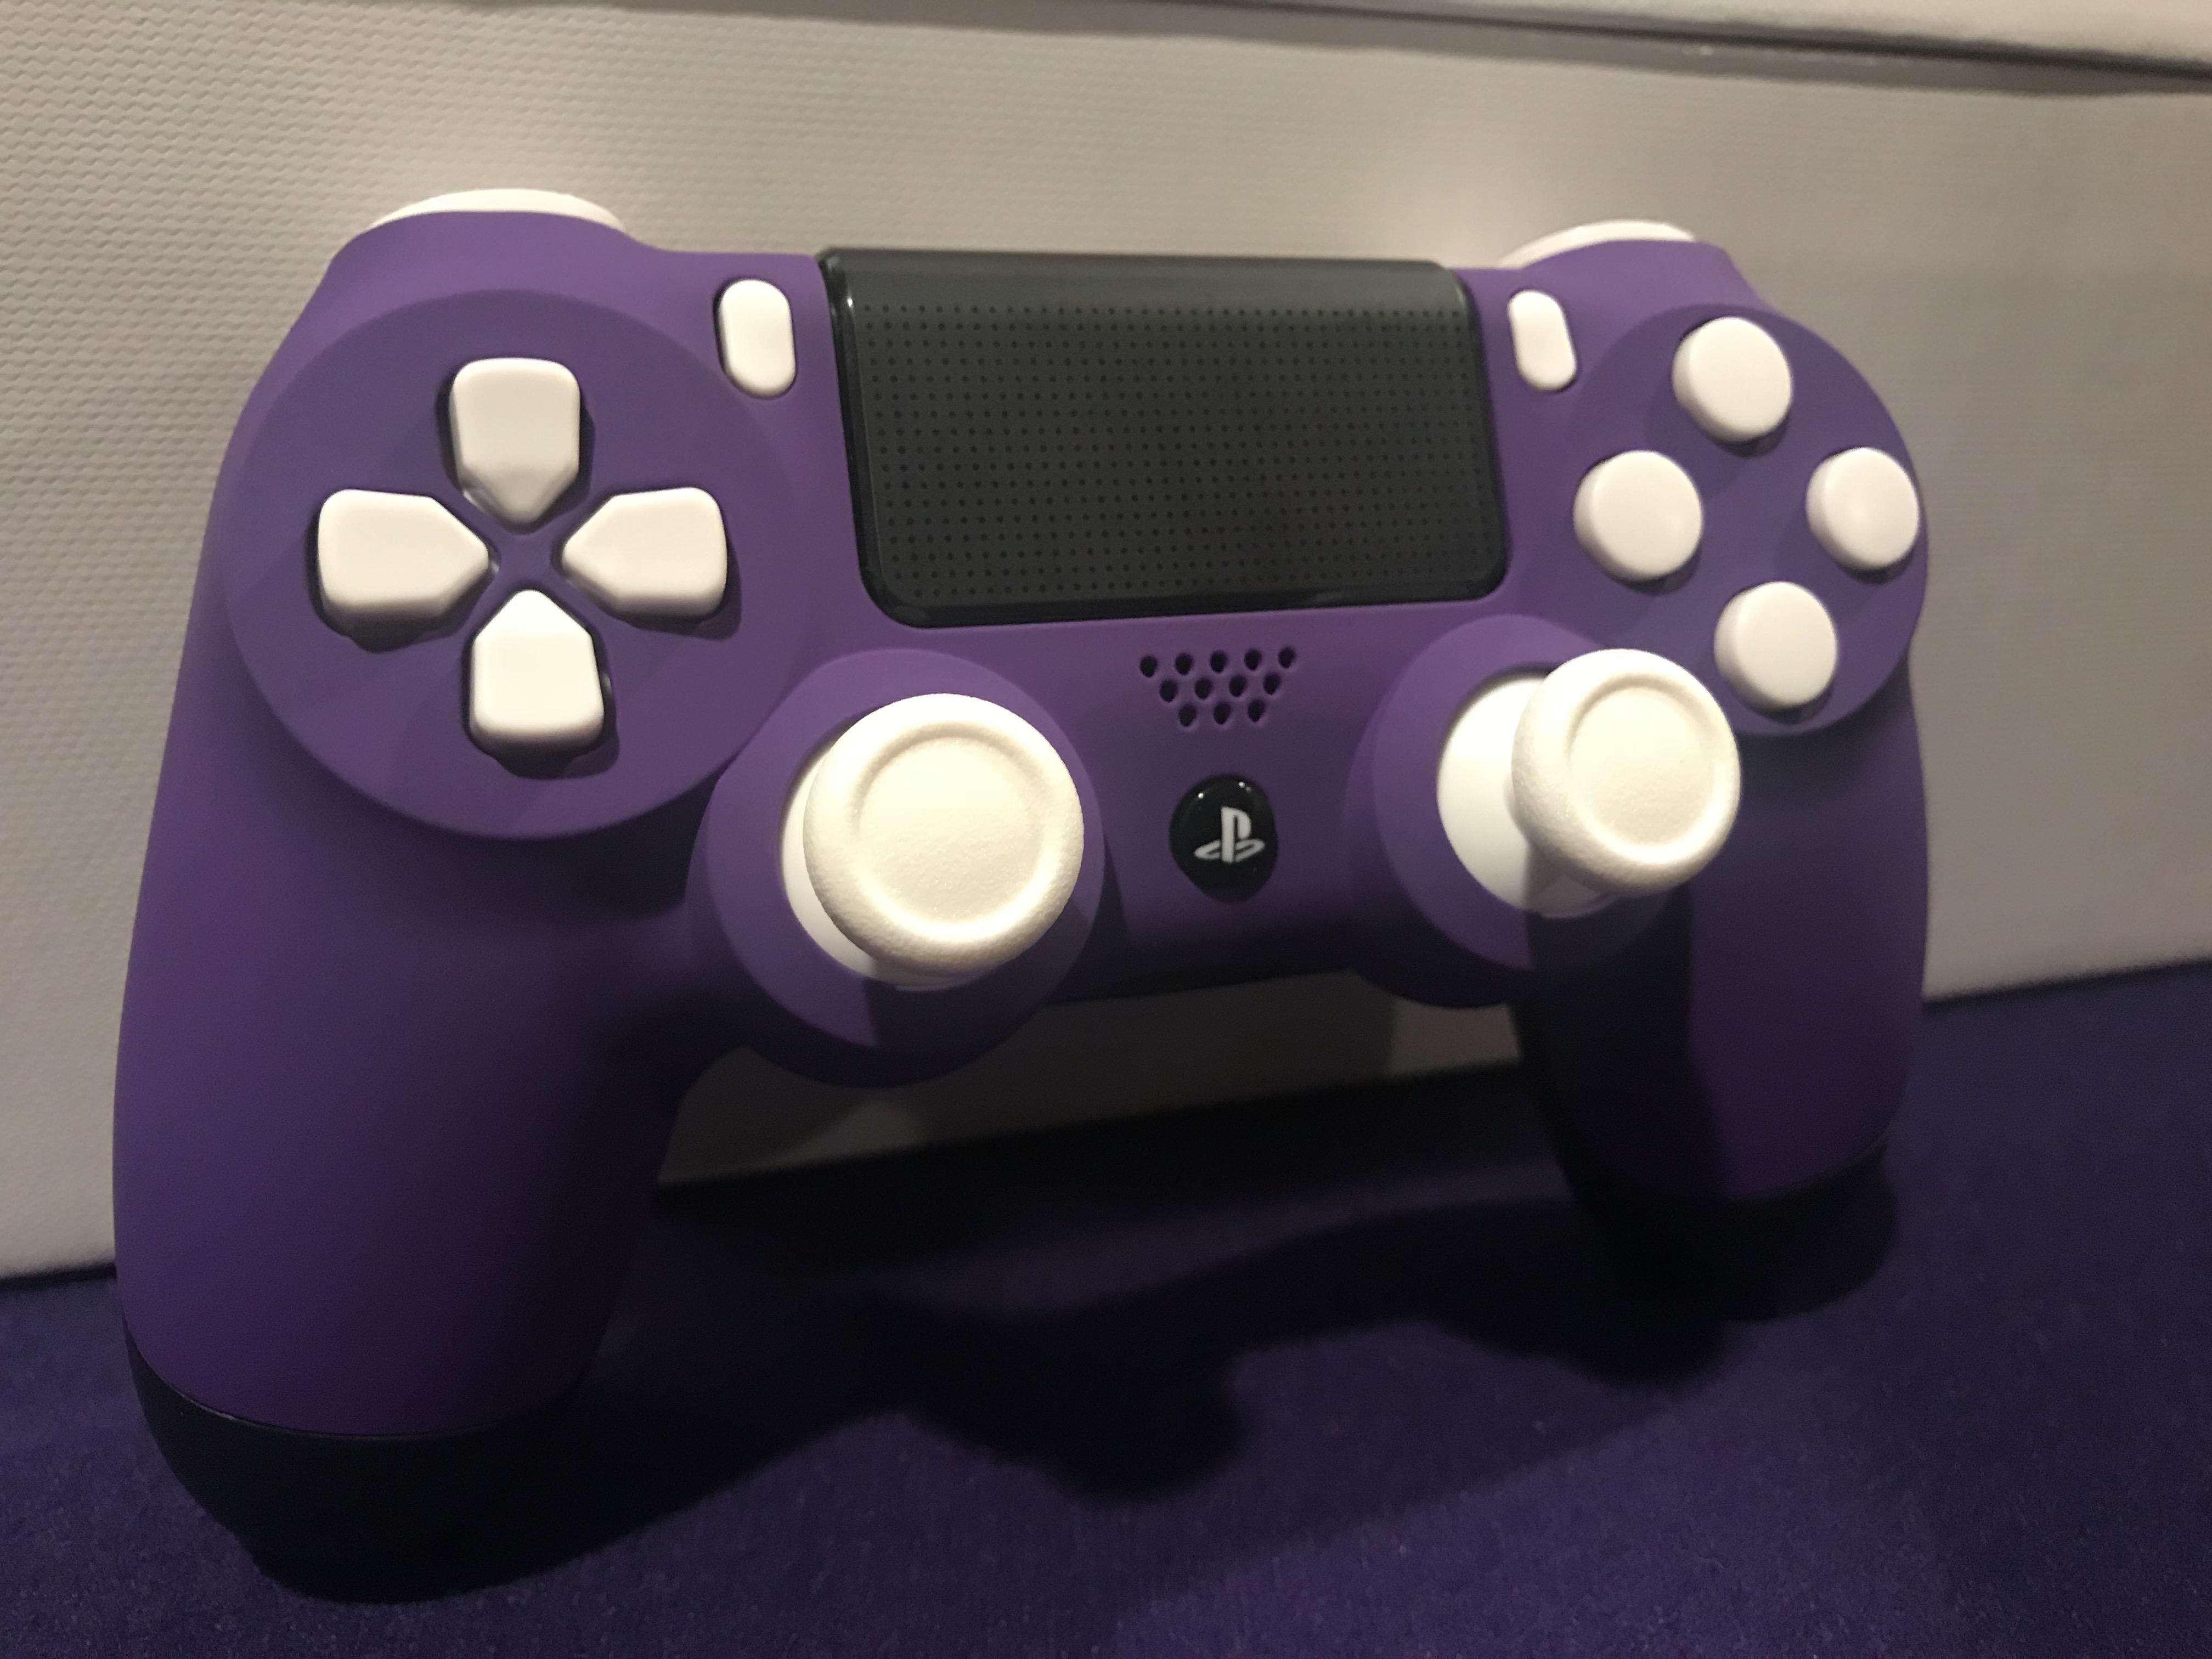 My recent project Projects, Gaming products, Playstation